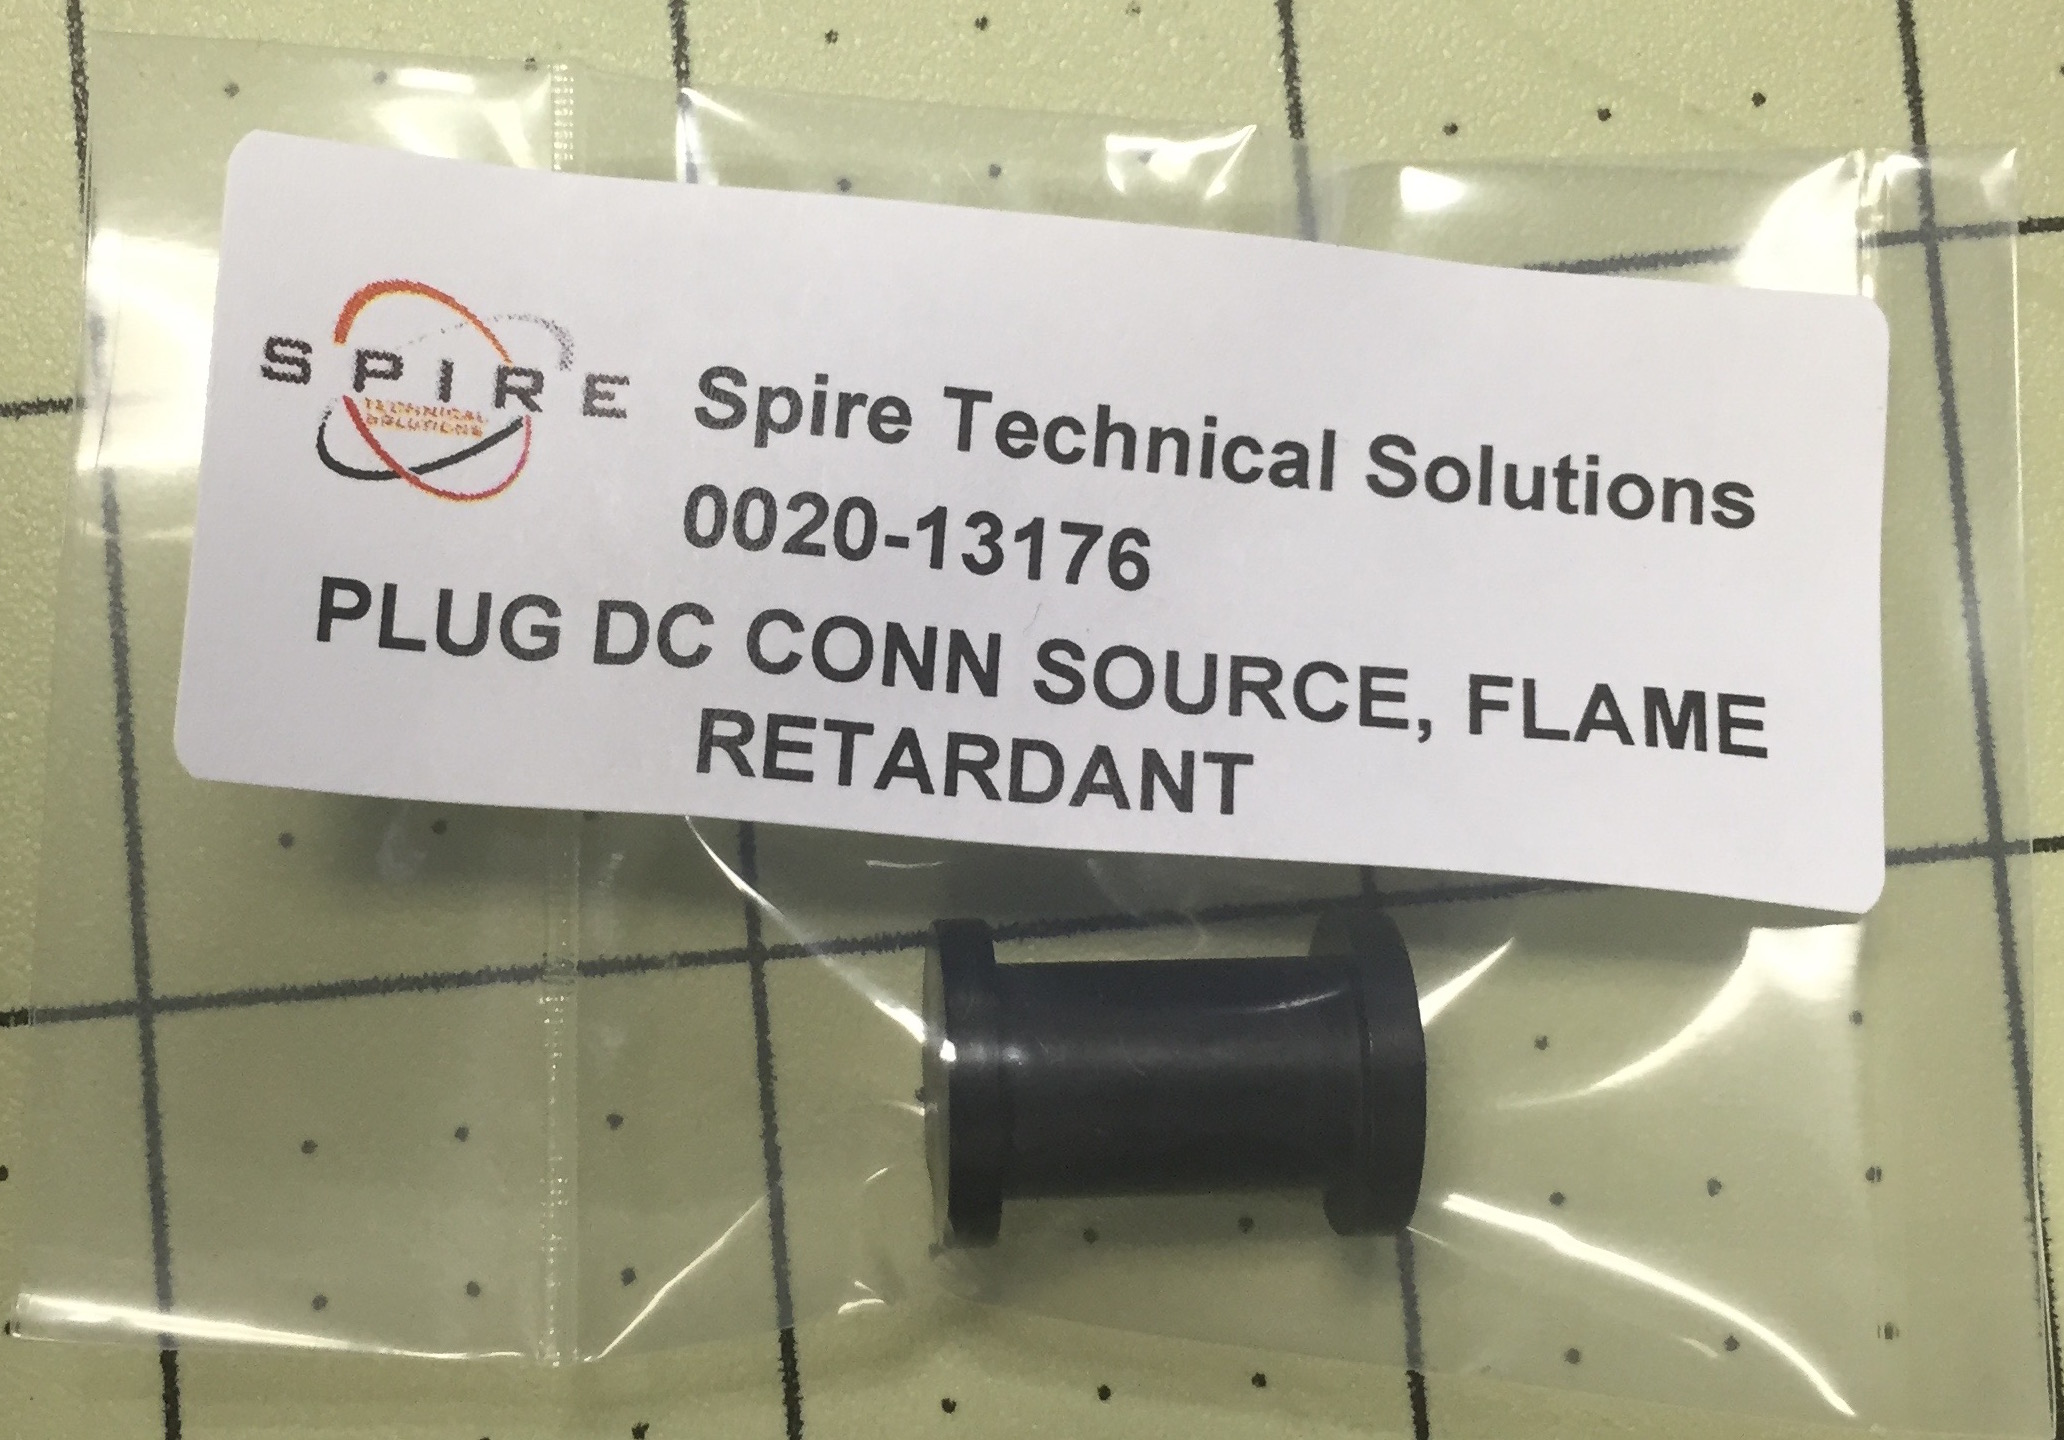 PLUG DC CONN SOURCE, FLAME RETARDANT